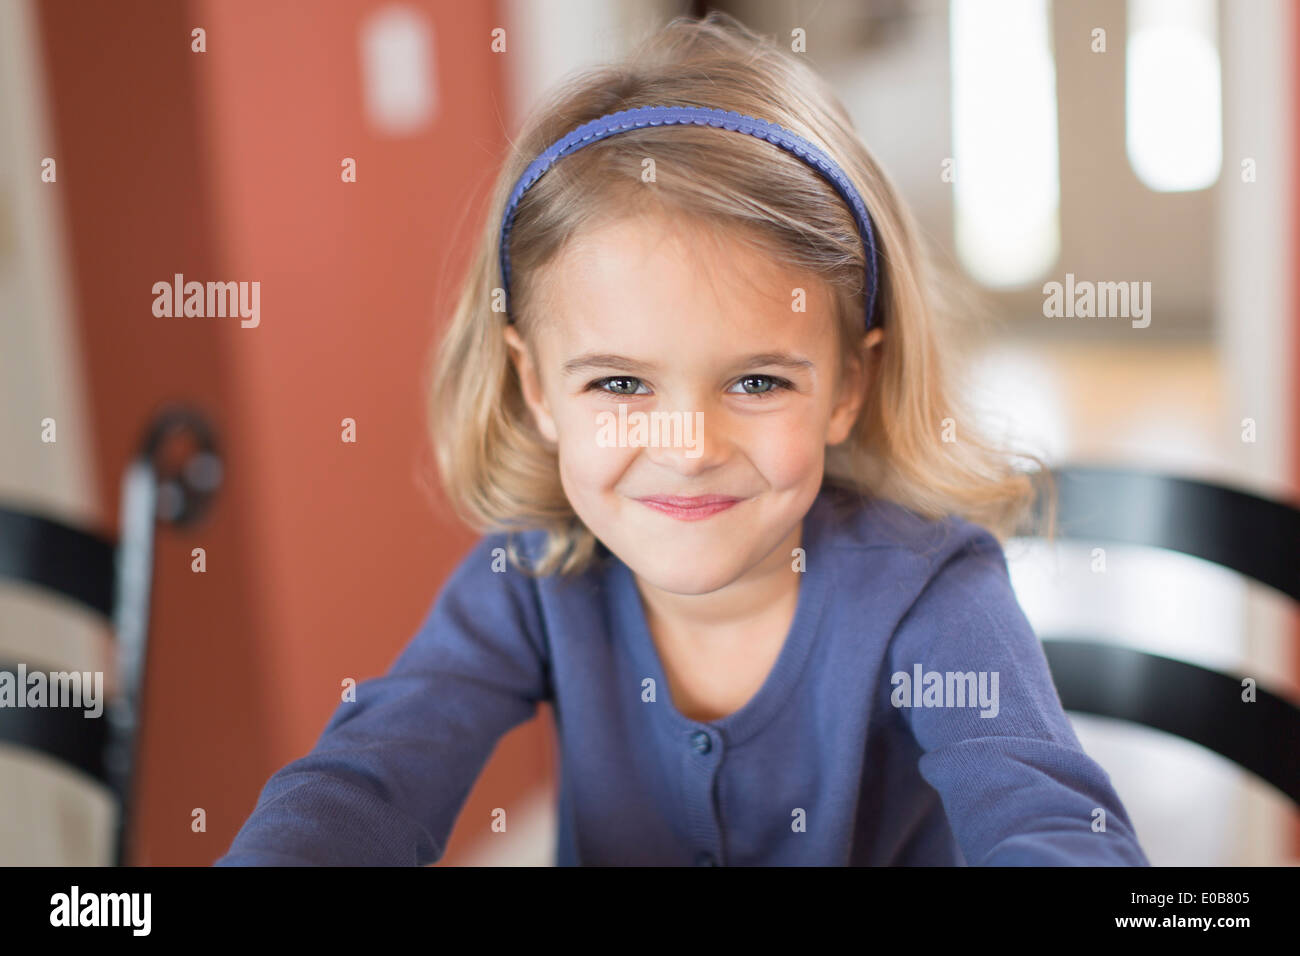 Portrait of smiling cute young girl Photo Stock